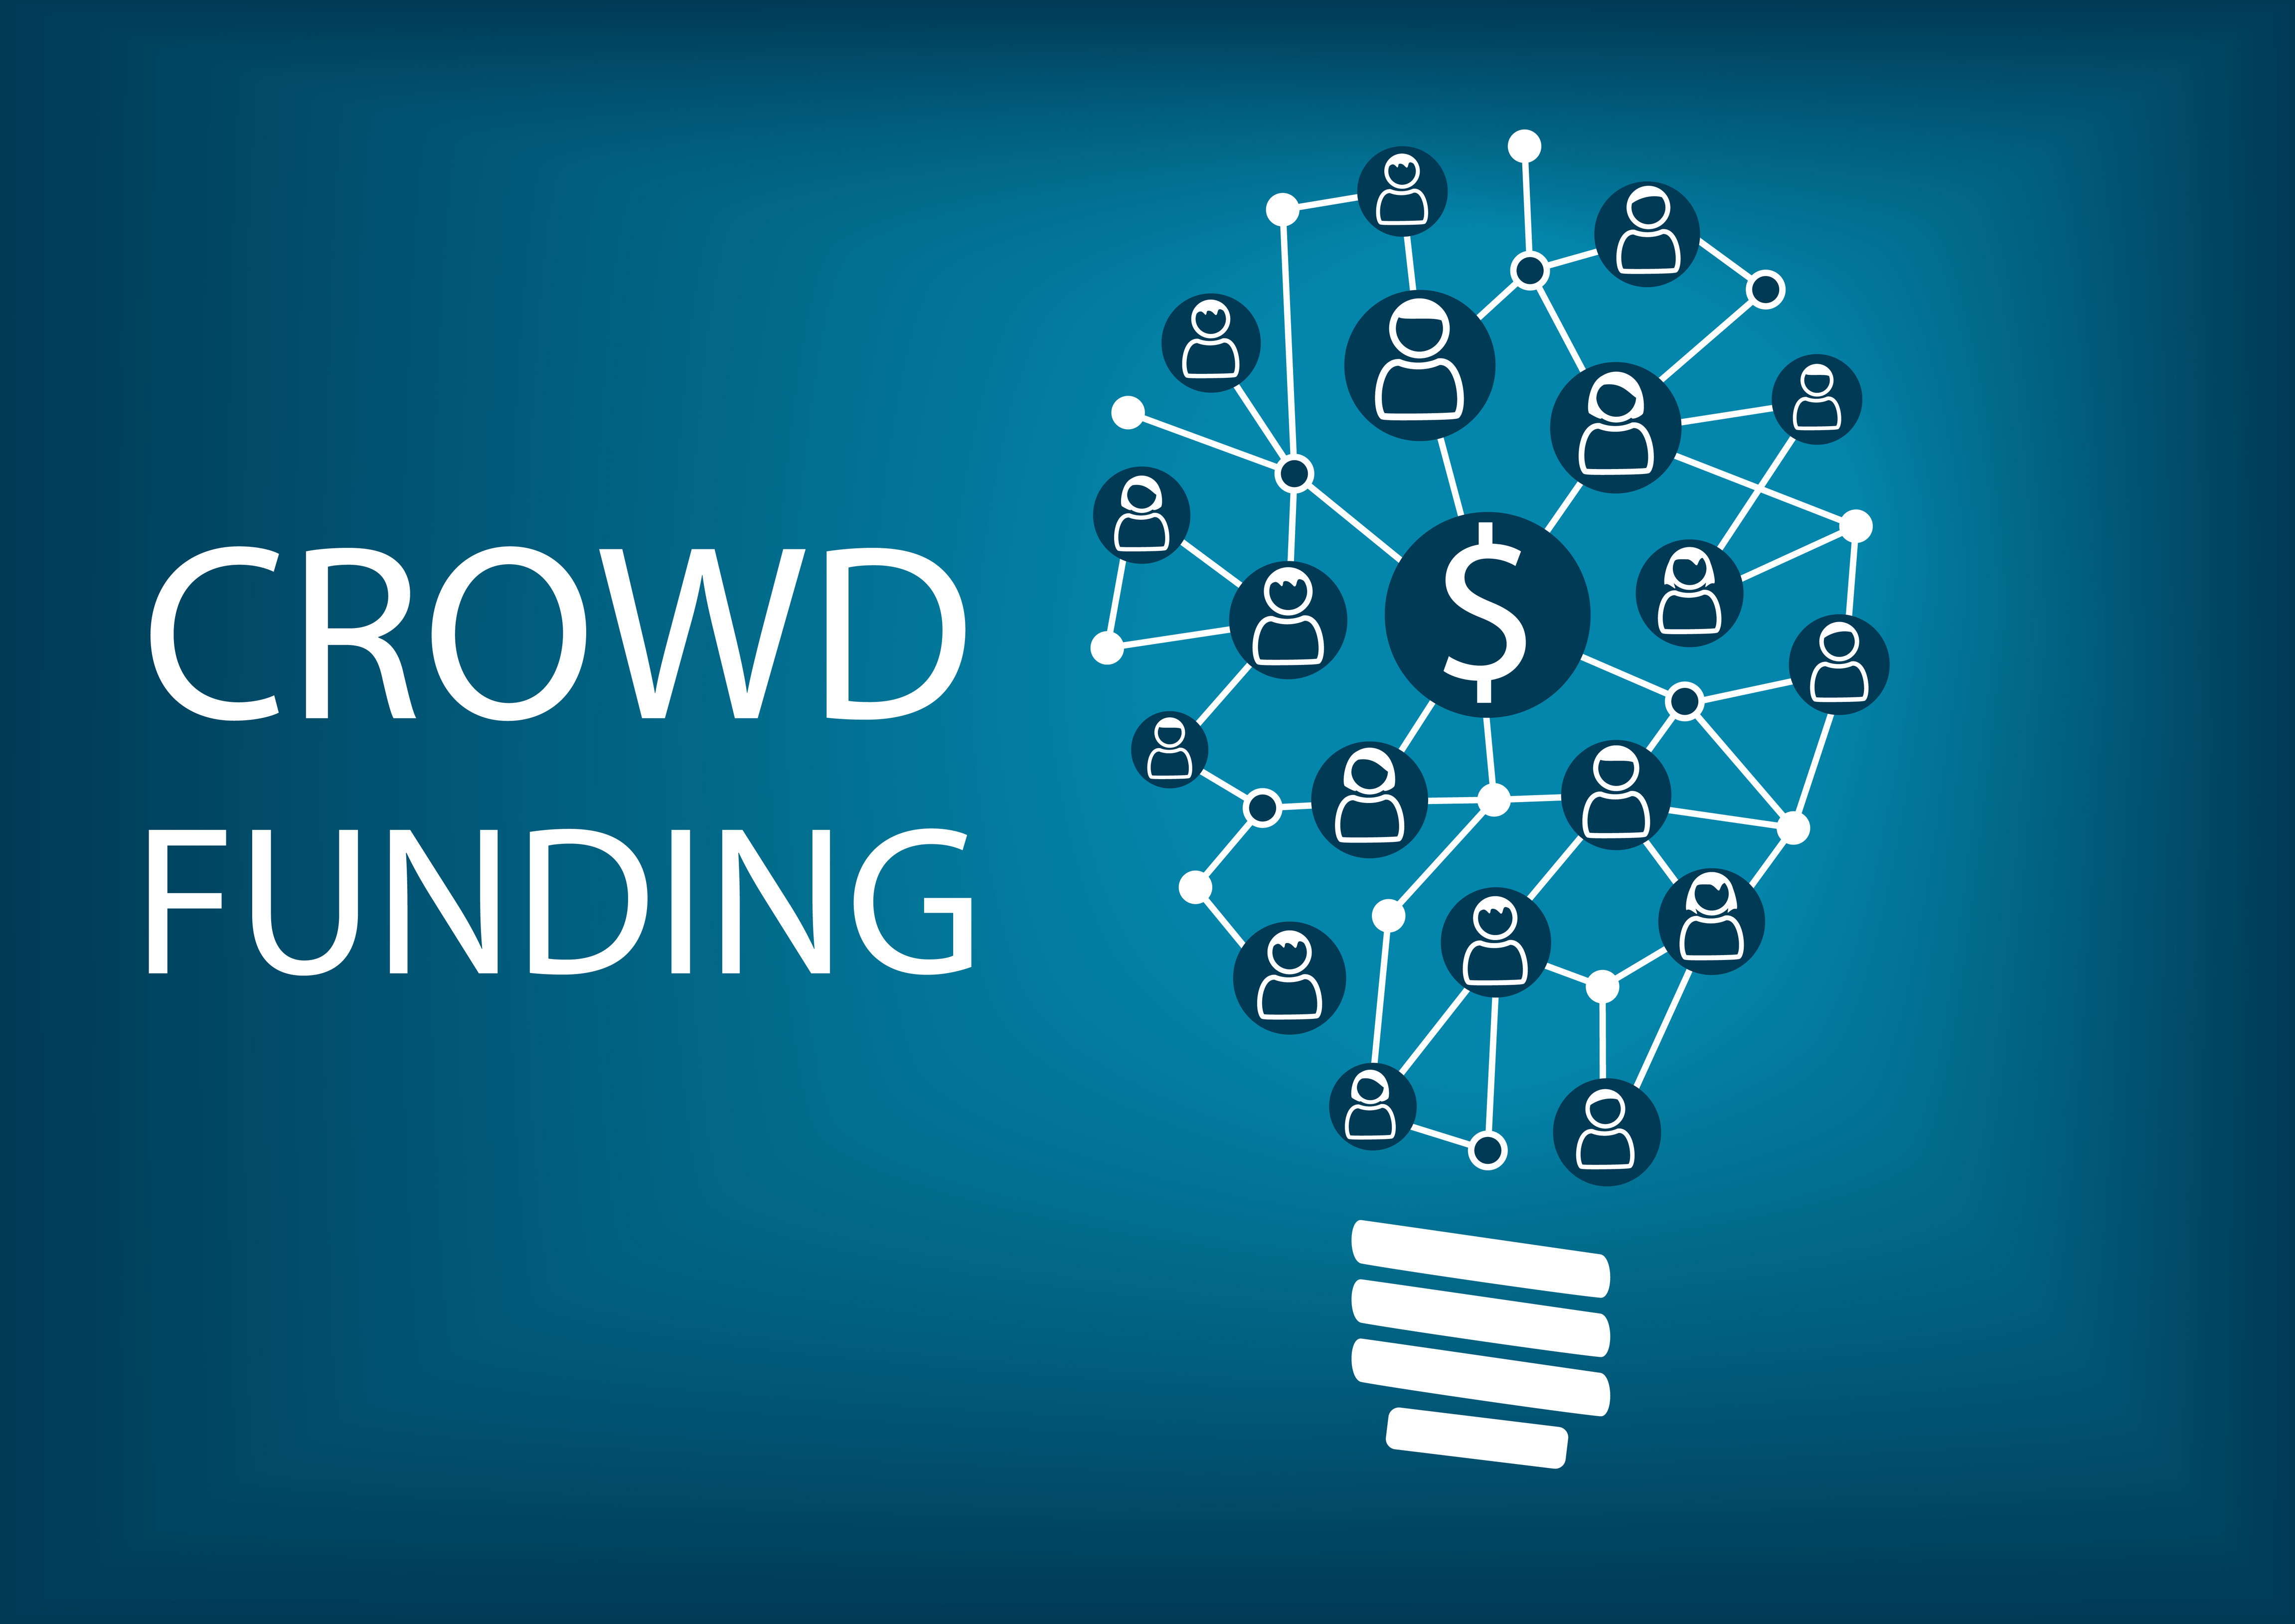 Crowd funding concept. Vector illustration background